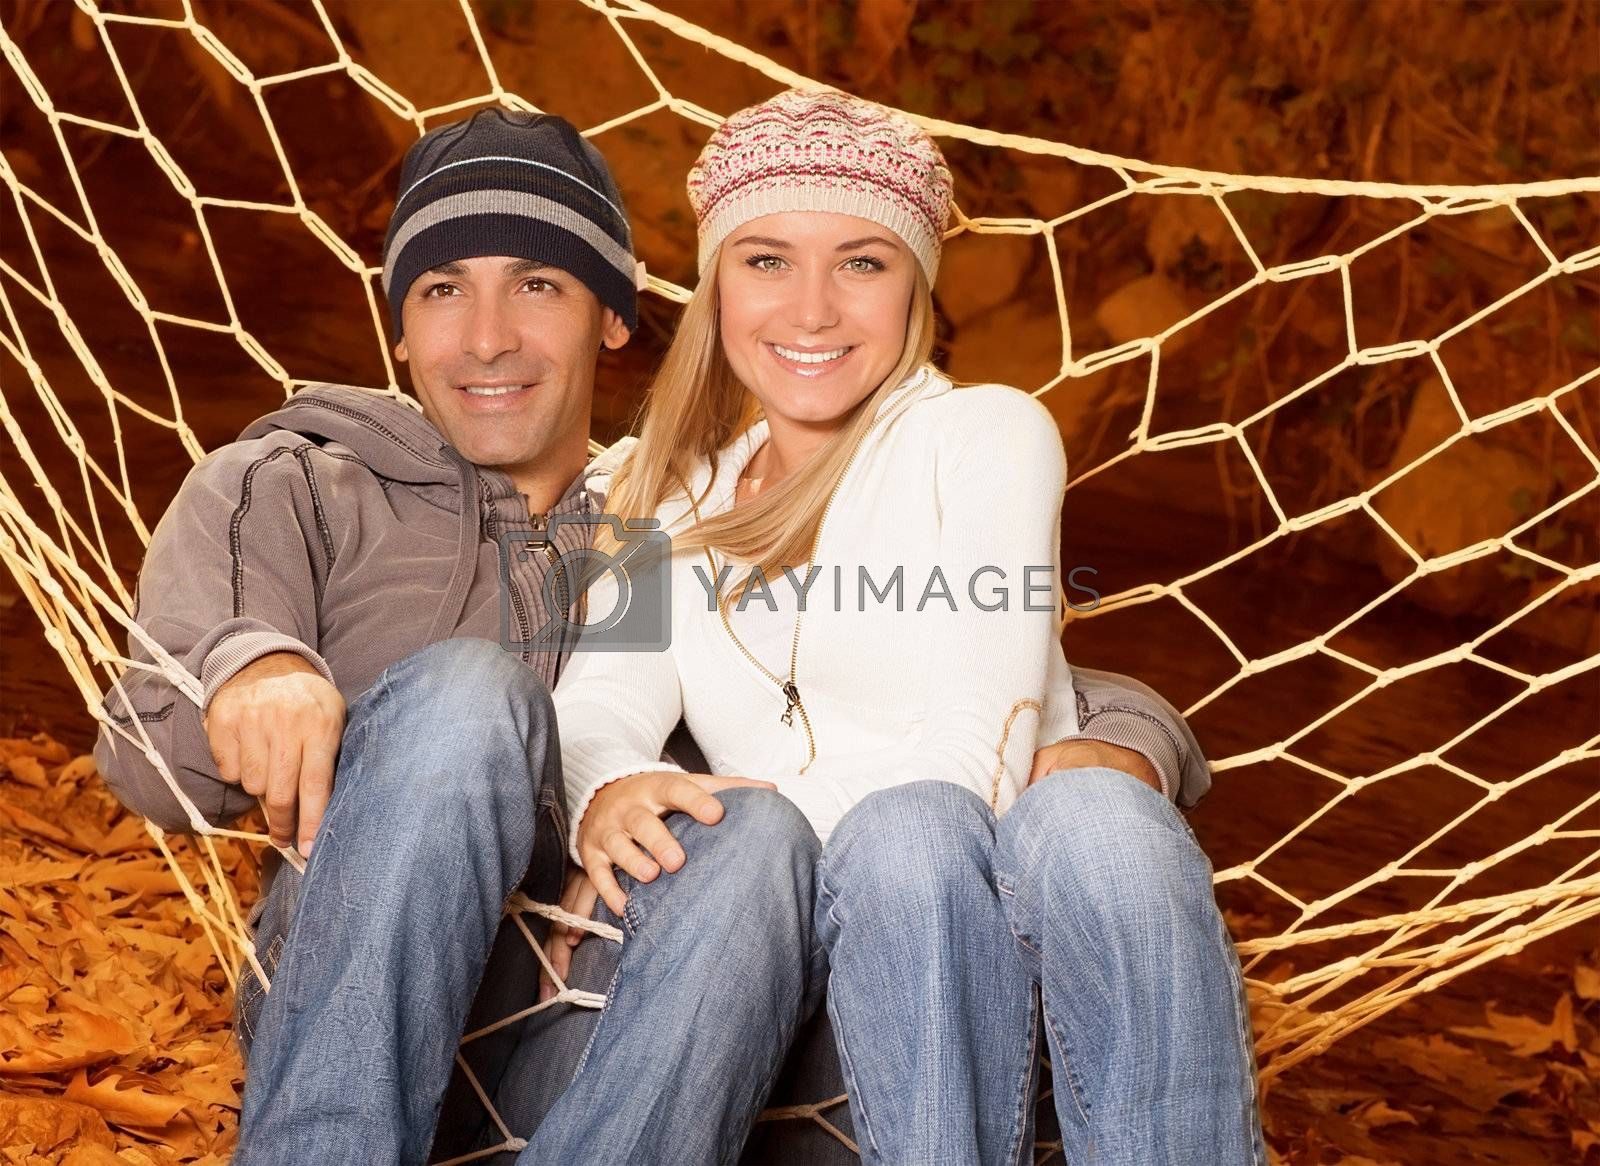 Picture of two loving person swinging in hammock in autumnal park, cheerful pair having fun in fall forest, romantic relationship, young family sitting in hammock on orange autumn background